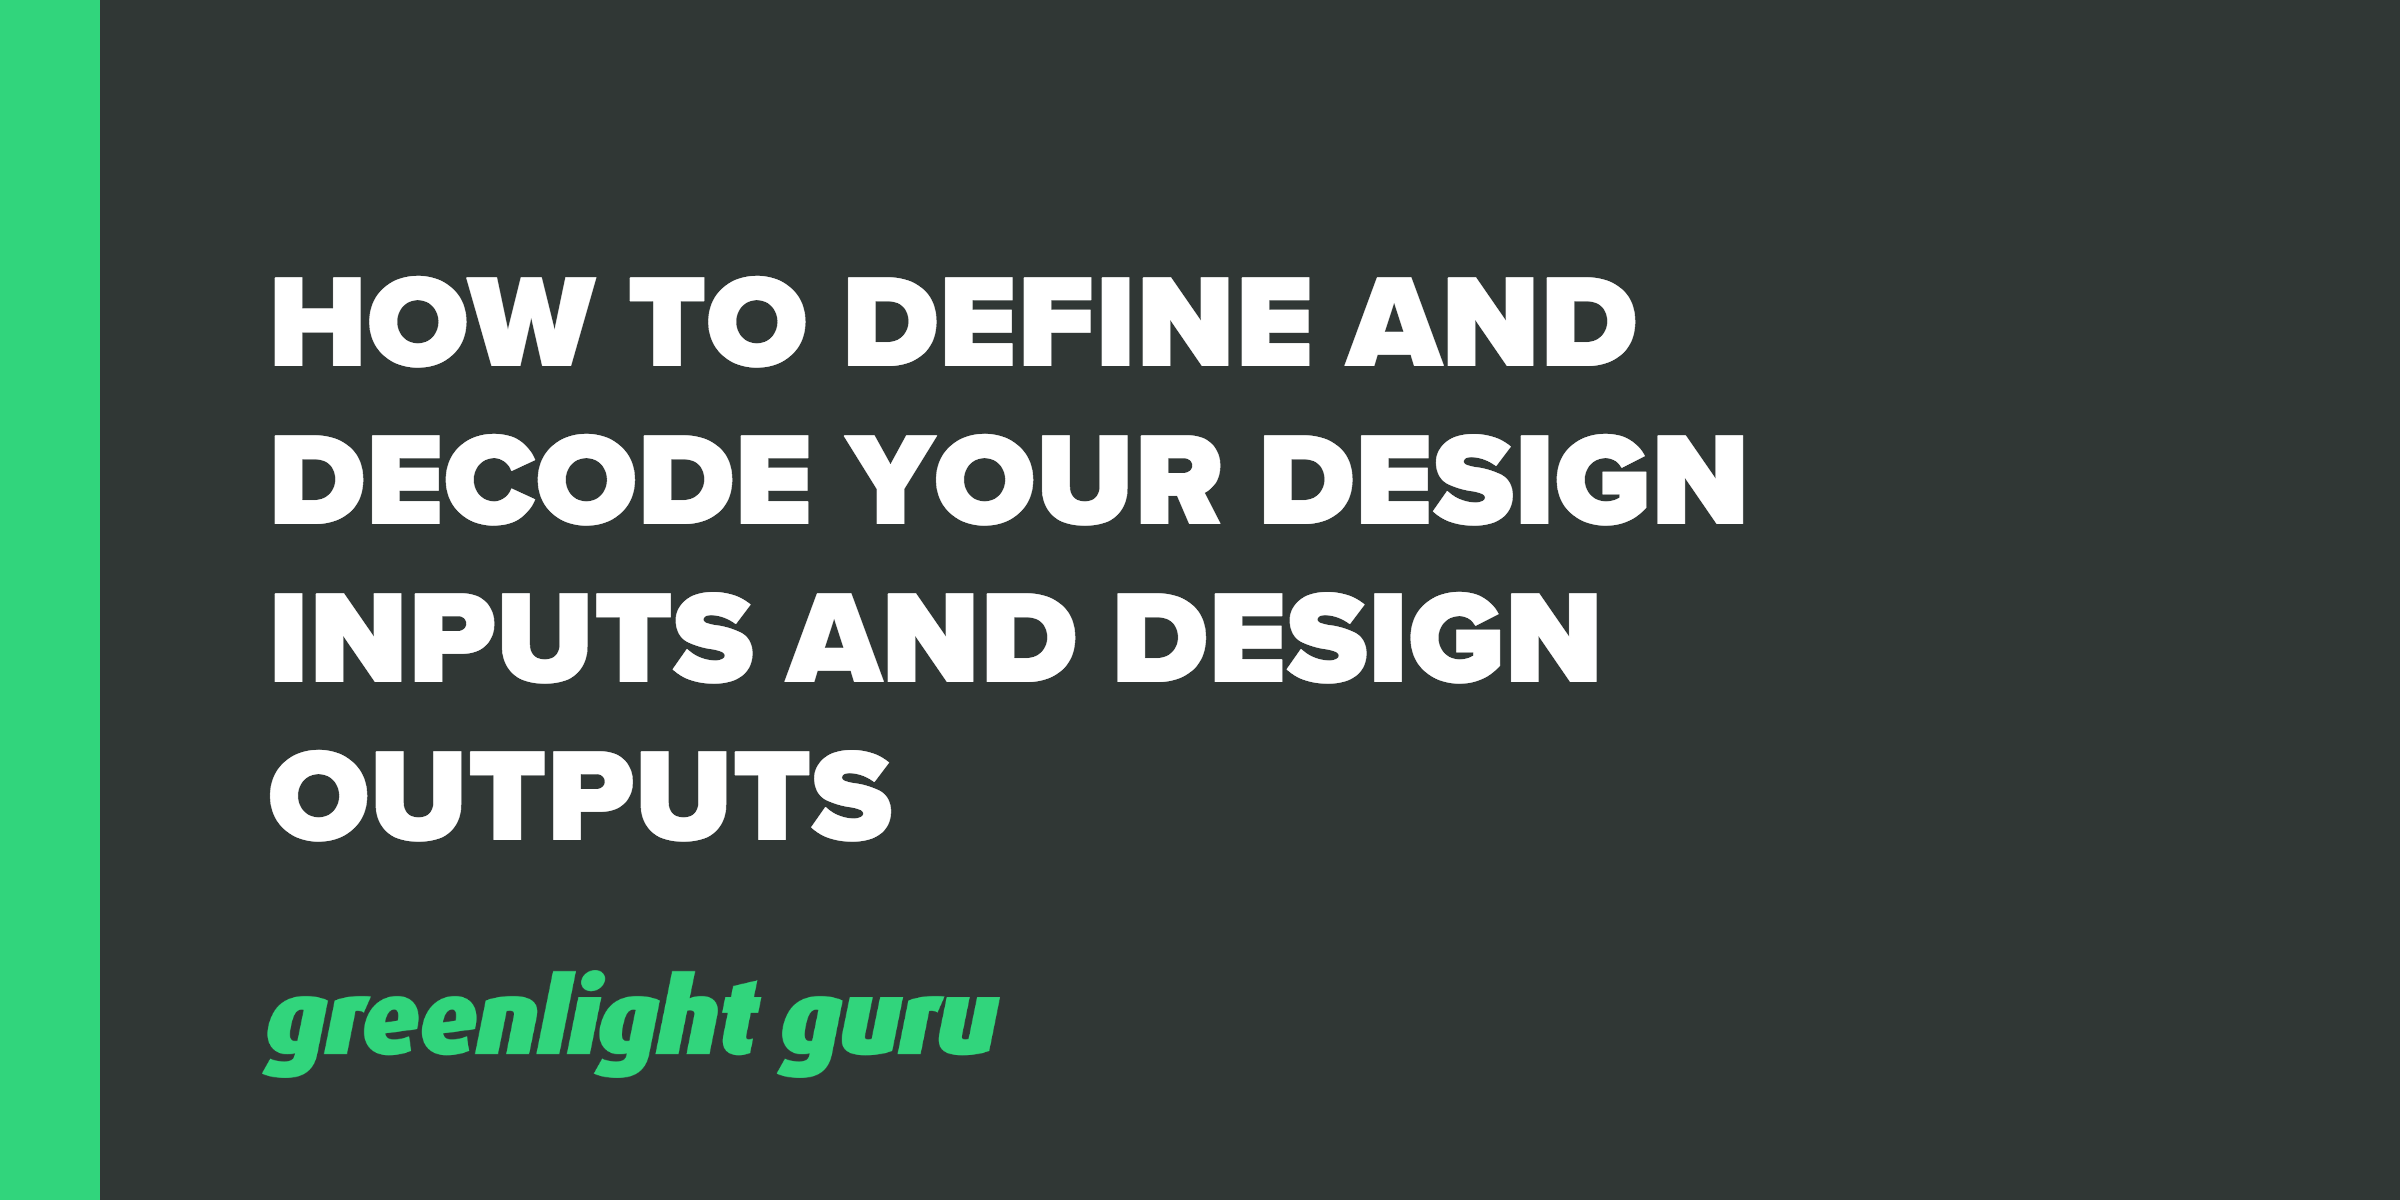 How to Define and Decode Your Design Inputs and Design Outputs